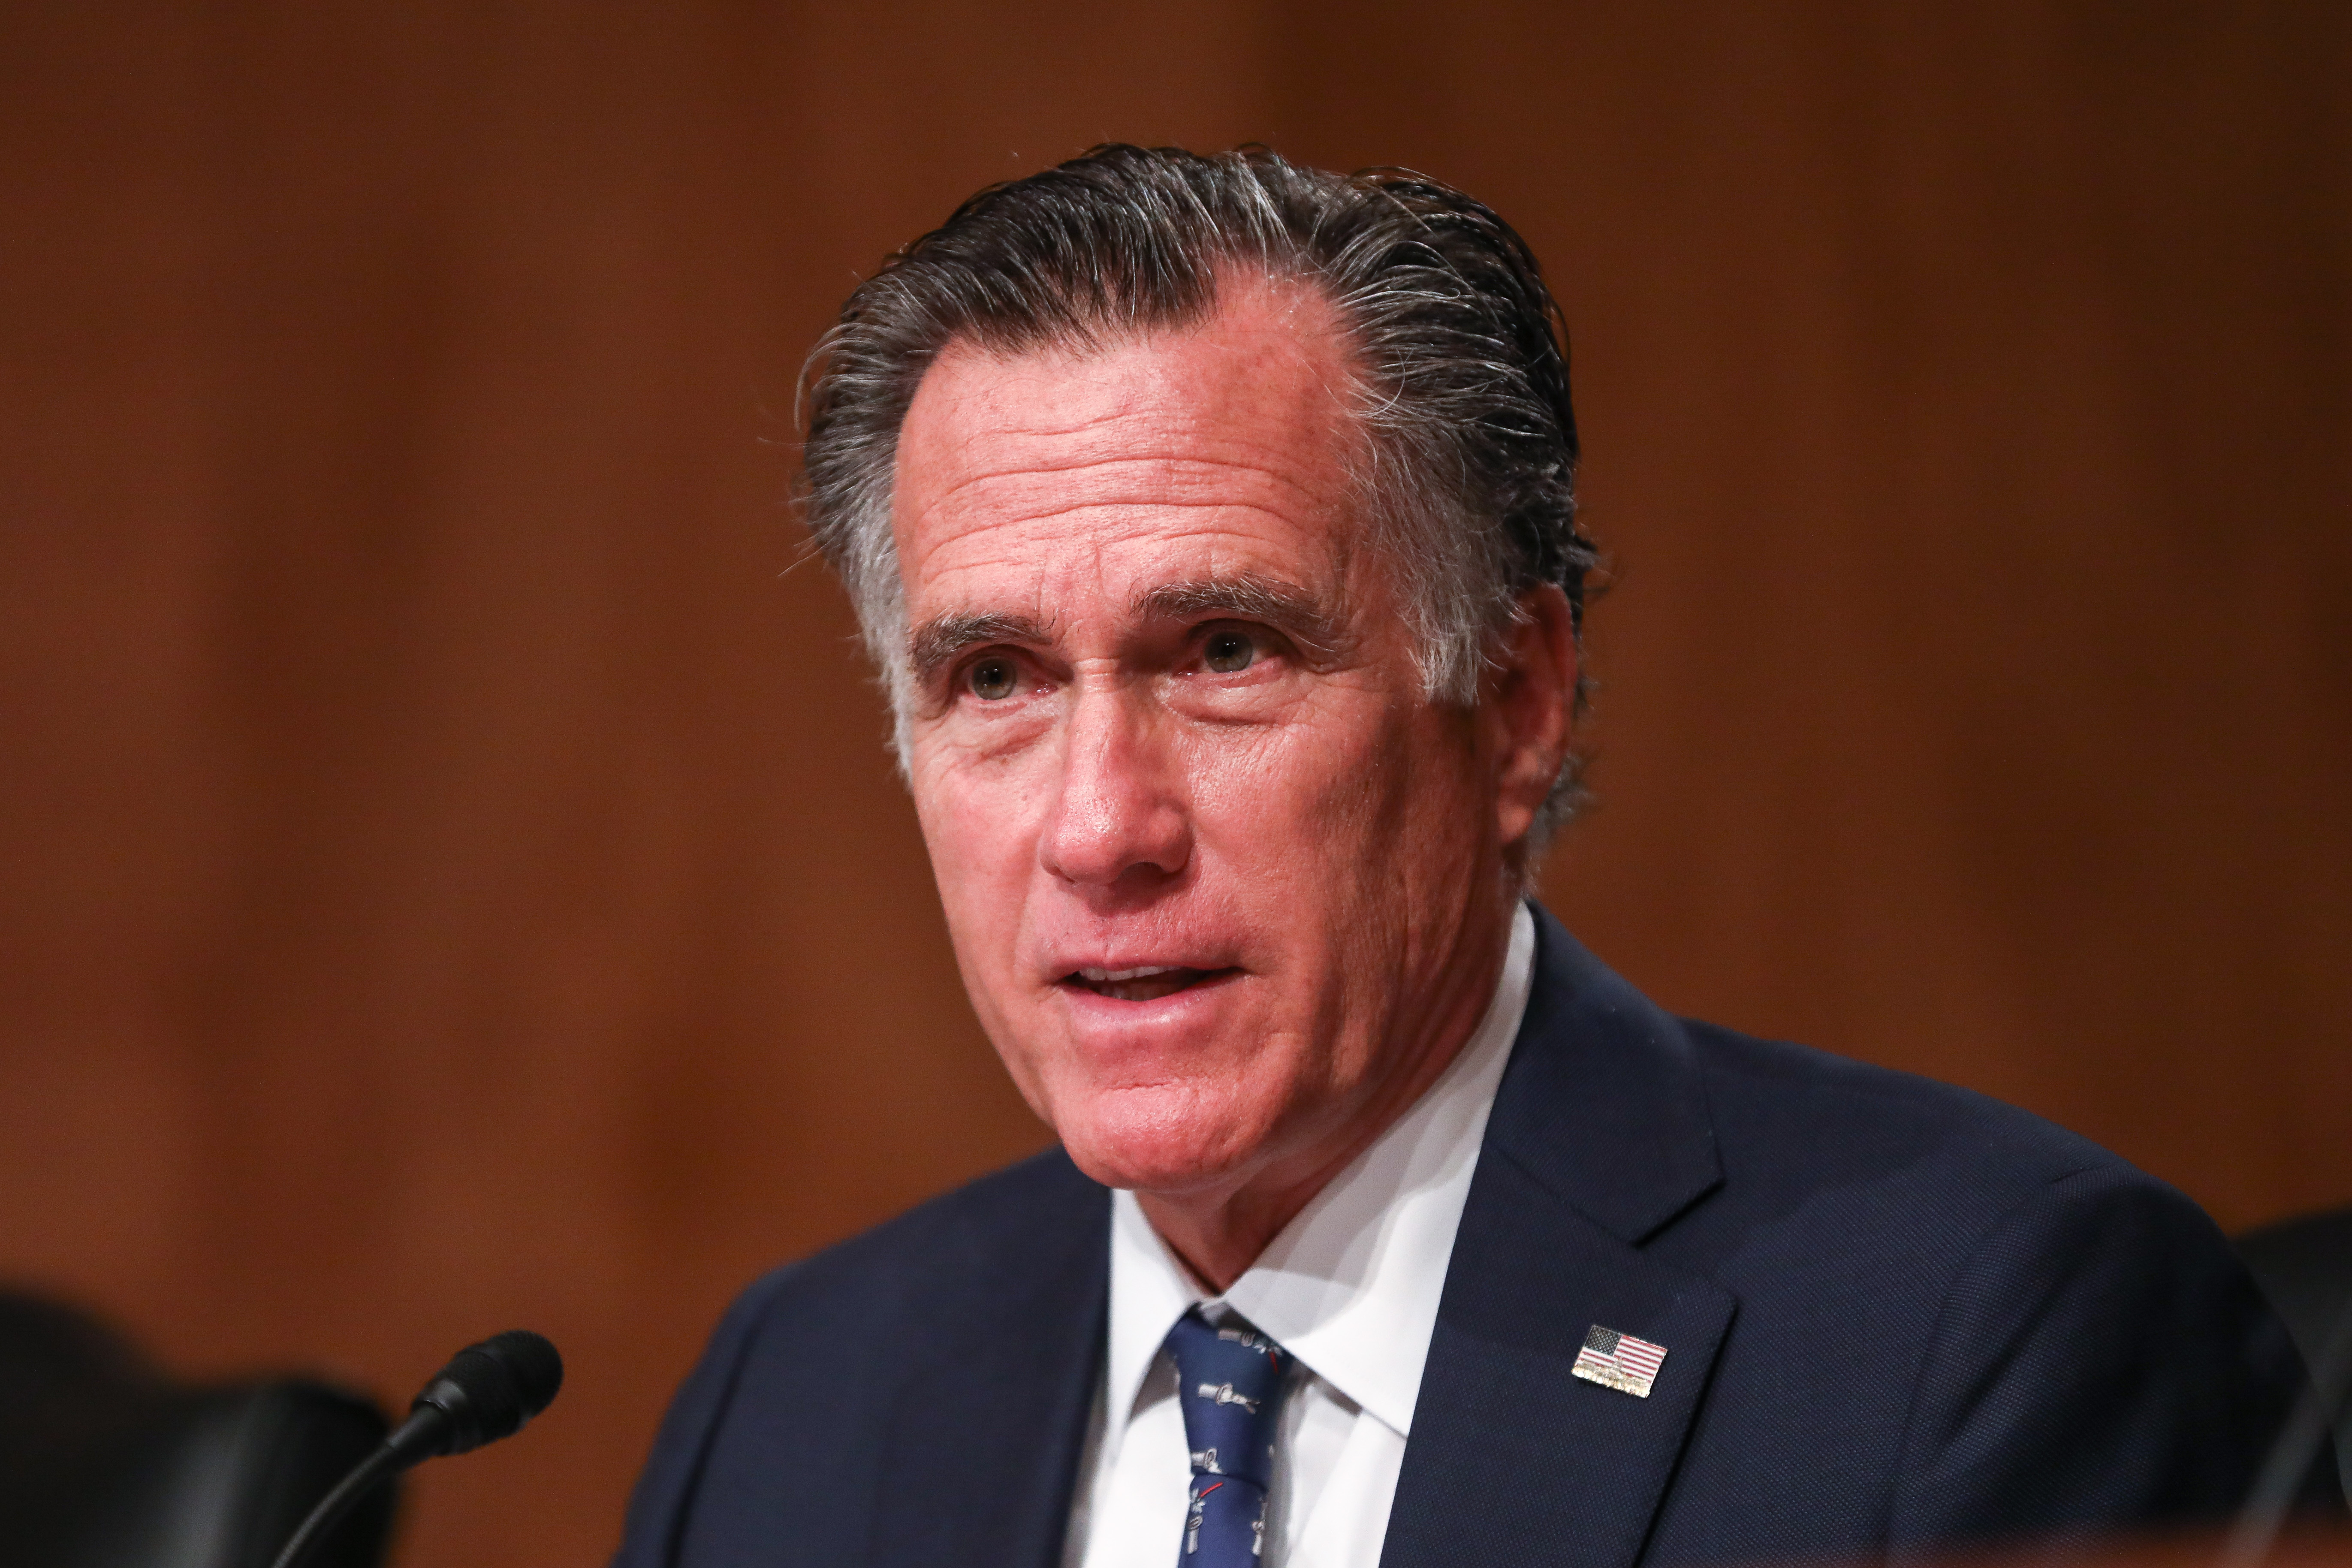 Mitt Romney Appears to Confirm Name of Anonymous Twitter Account